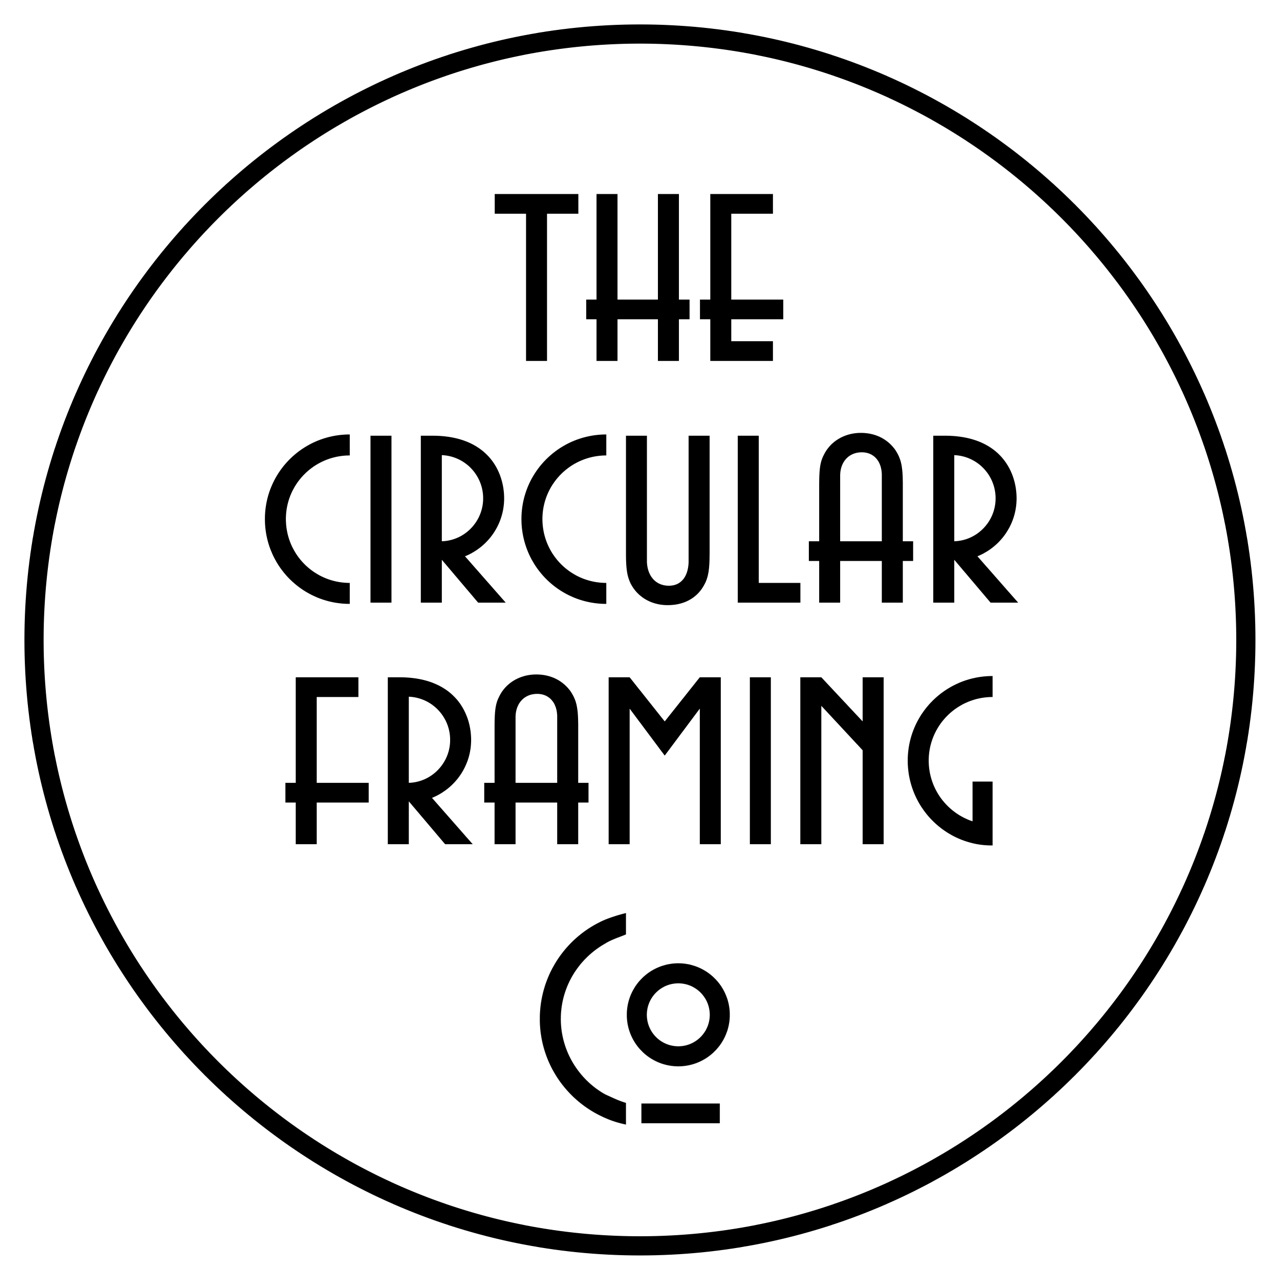 The Circular Framing Company — About